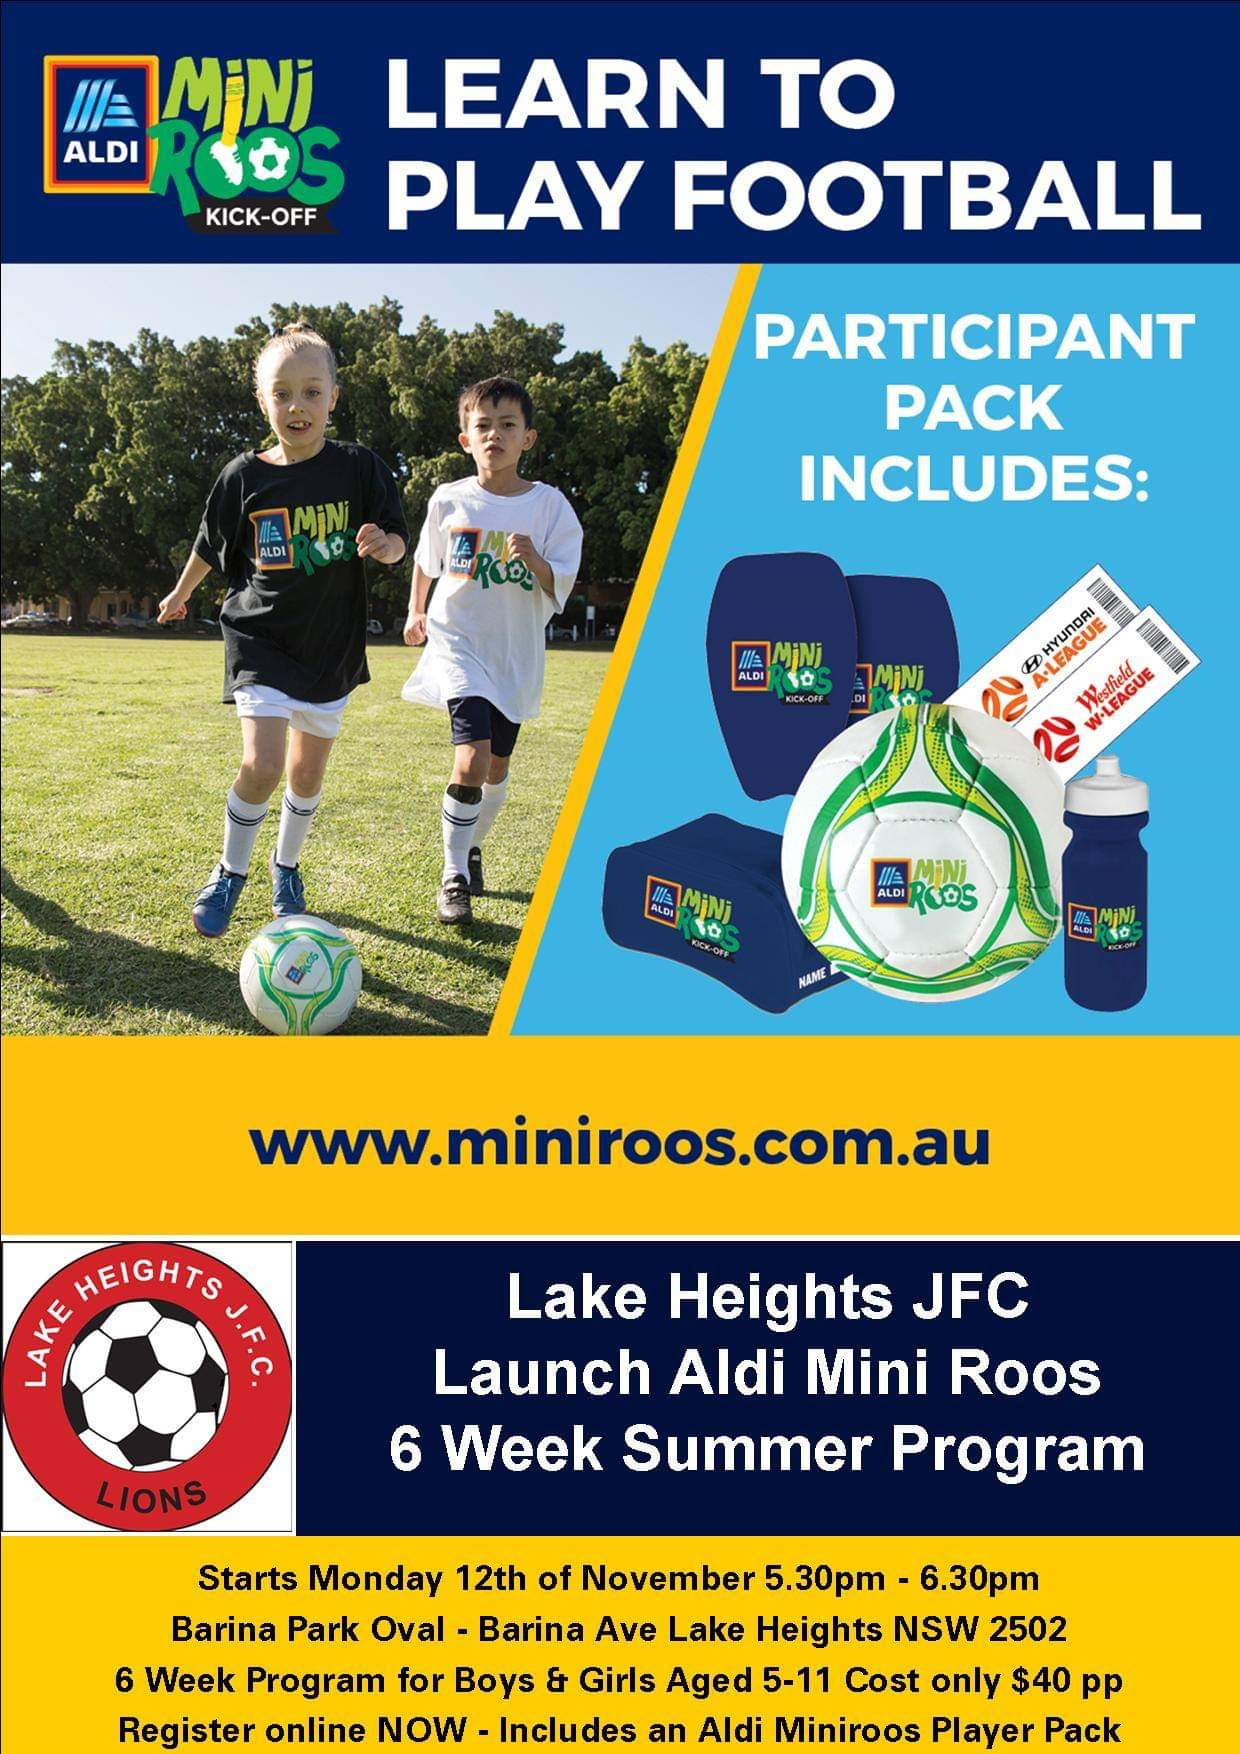 ALDI Summer Program at Lake Heights JFC